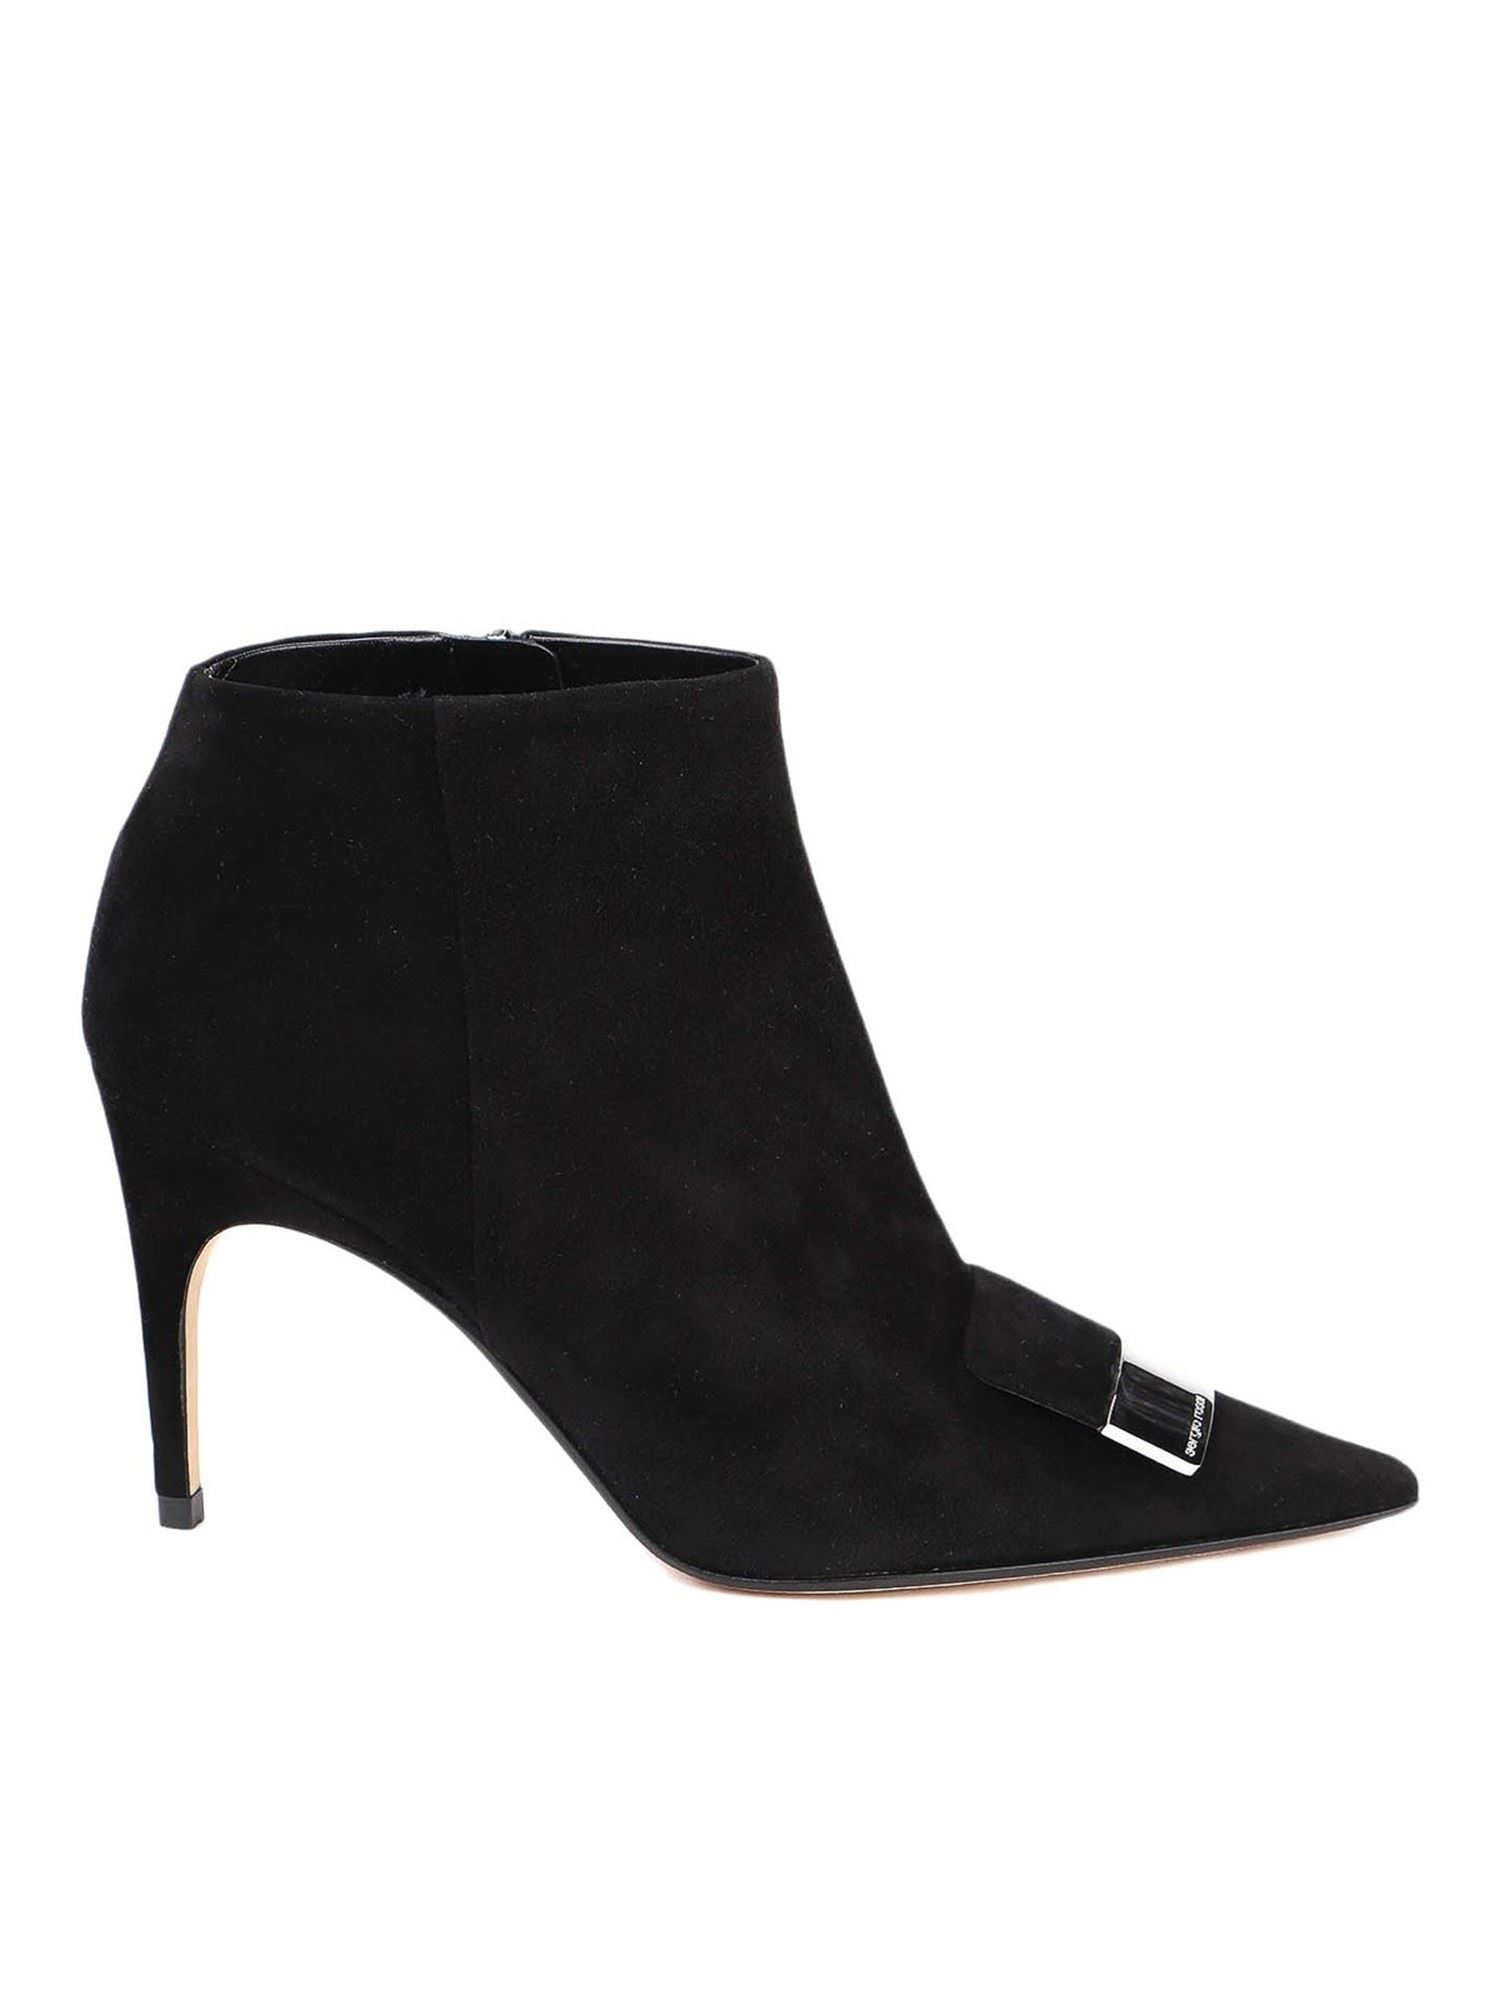 Sergio Rossi SUEDE ANKLE BOOTS IN BLACK